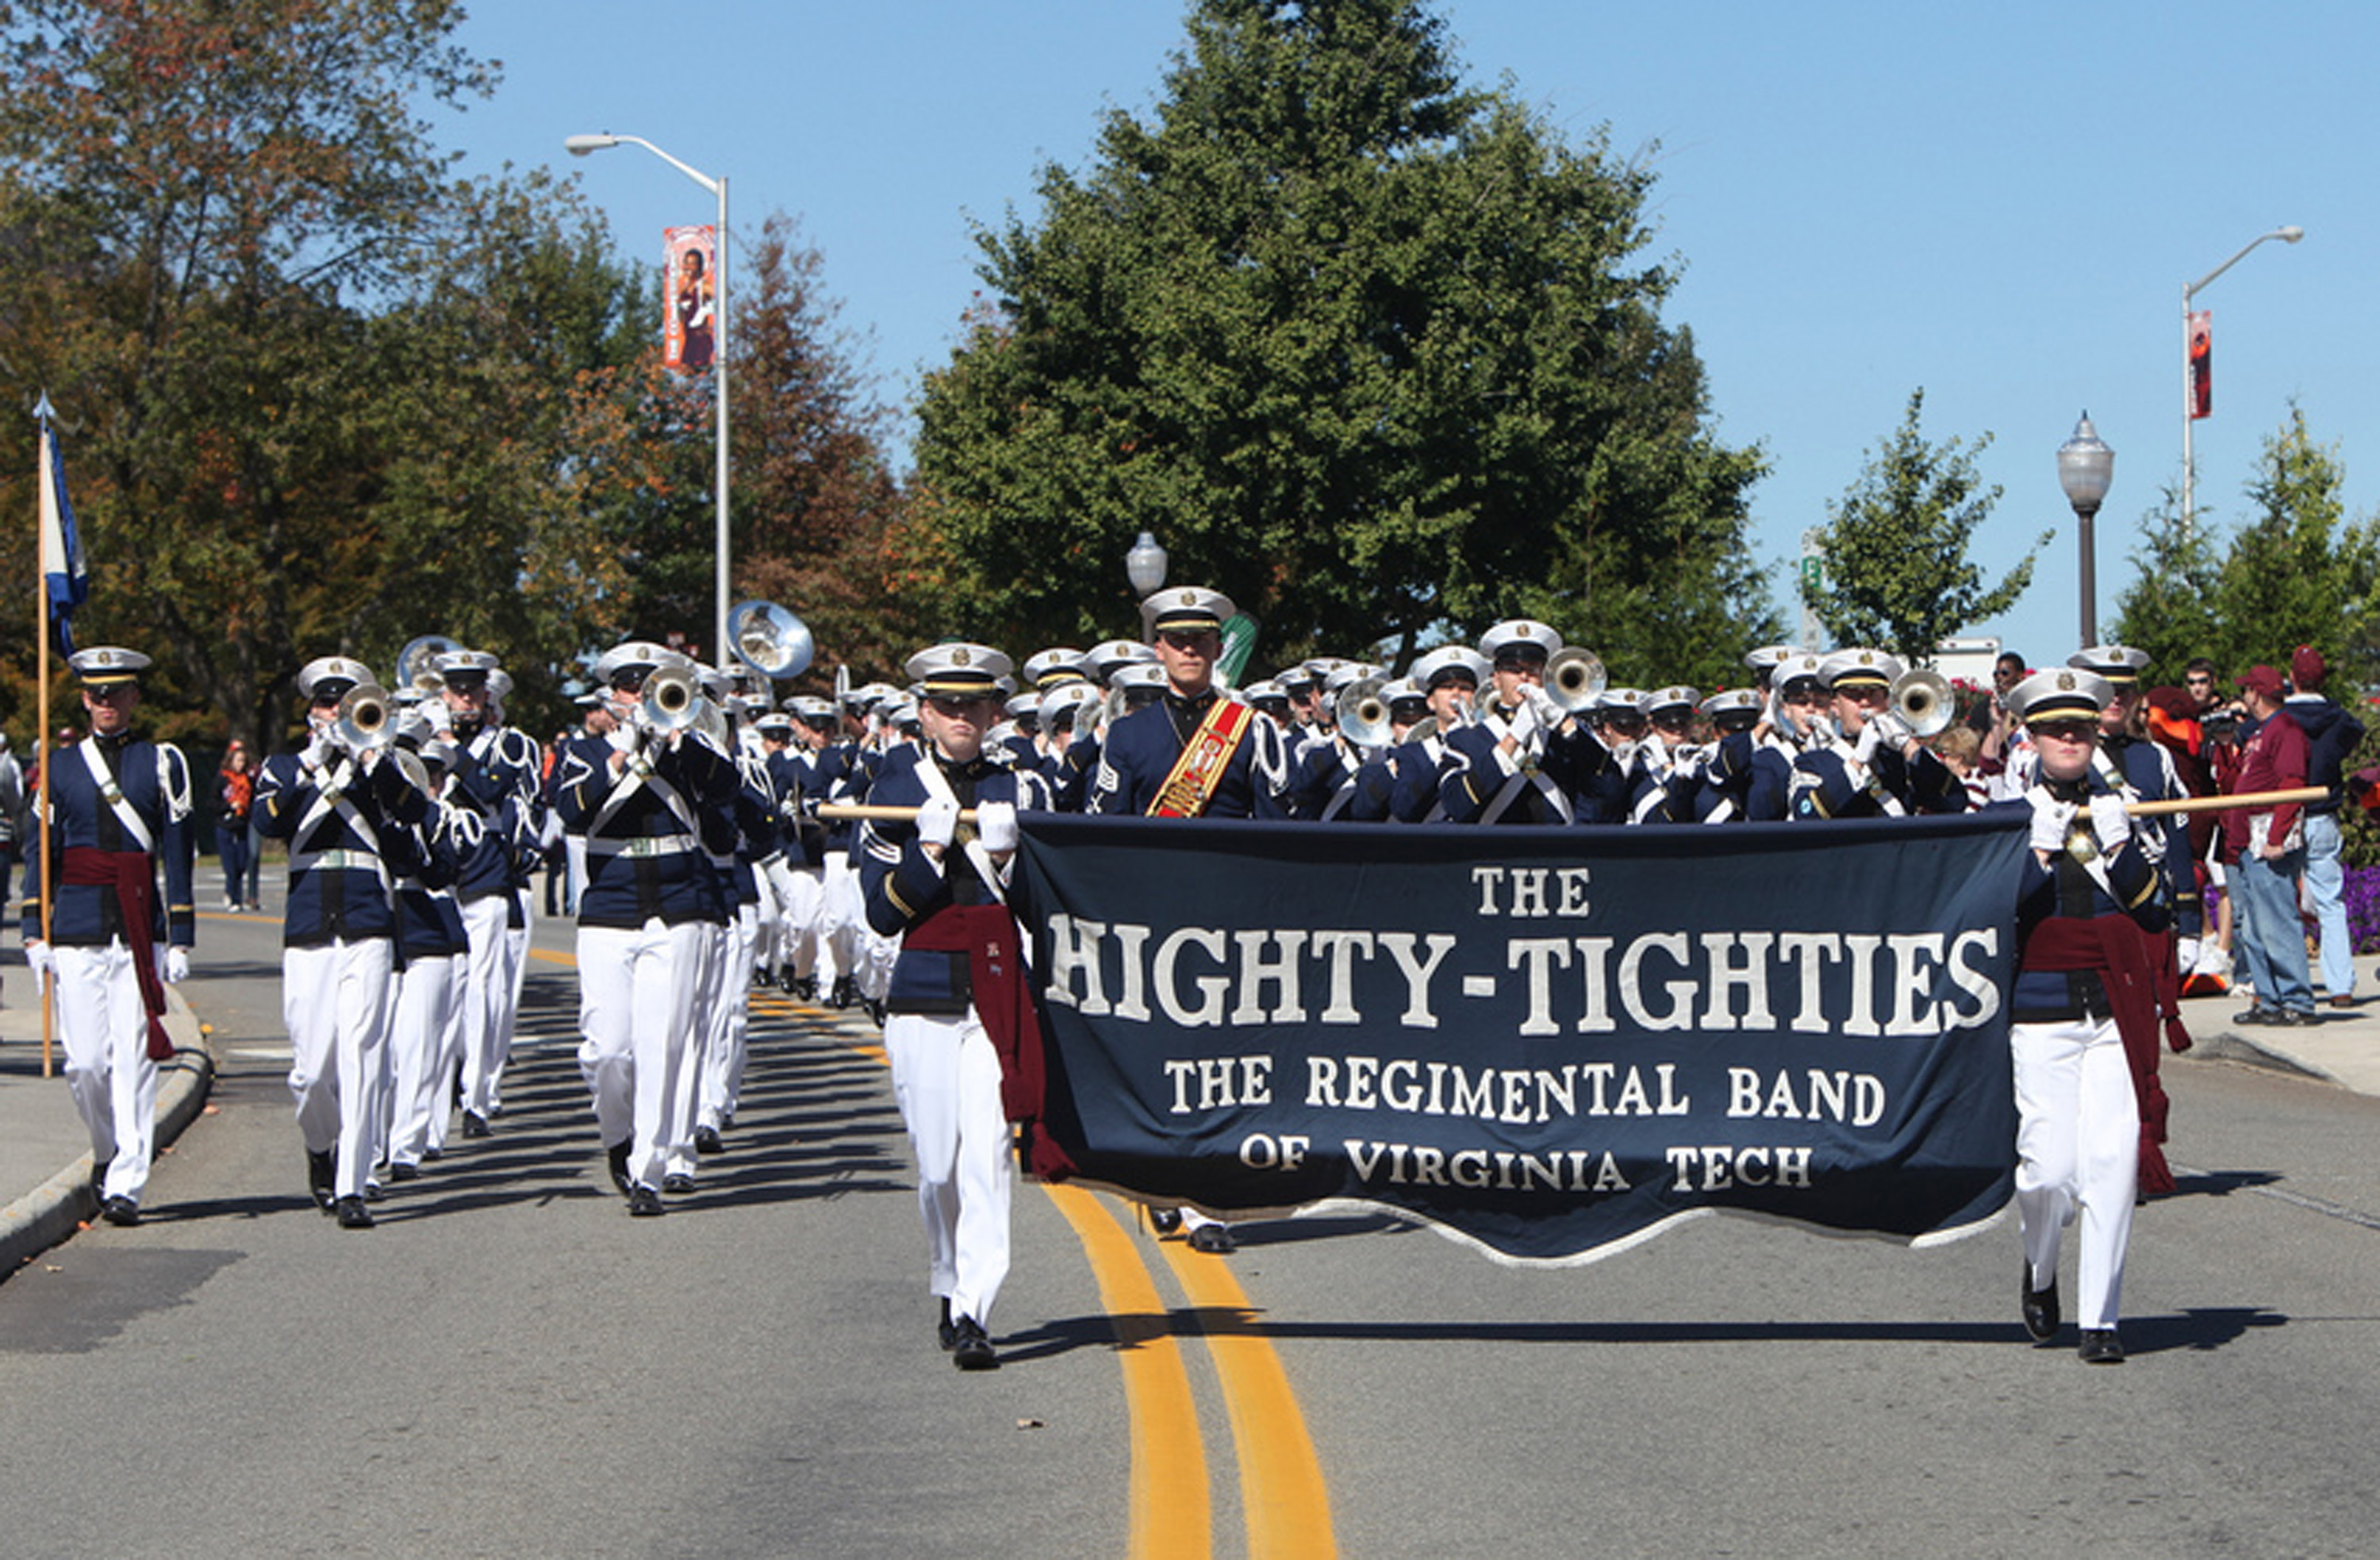 The Virginia Tech Corps of Cadets Regimental Band, the Highty-Tighties march.